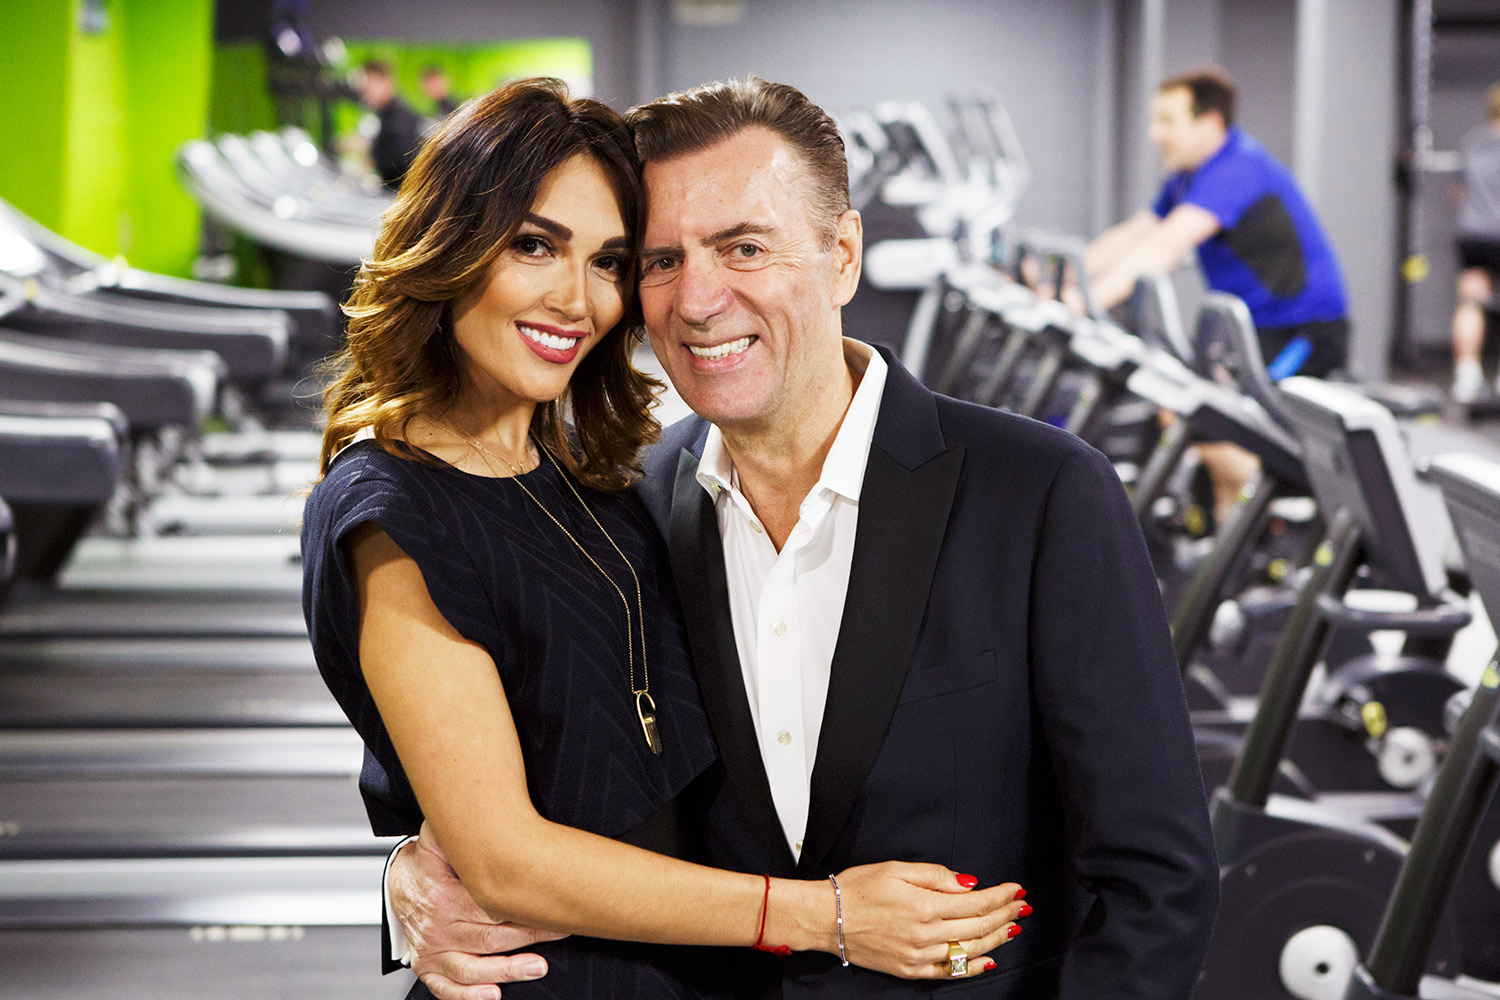 Duncan Bannatyne and his wife Nagora at the opening event of Bannattne Spa, Bury St Edmunds.